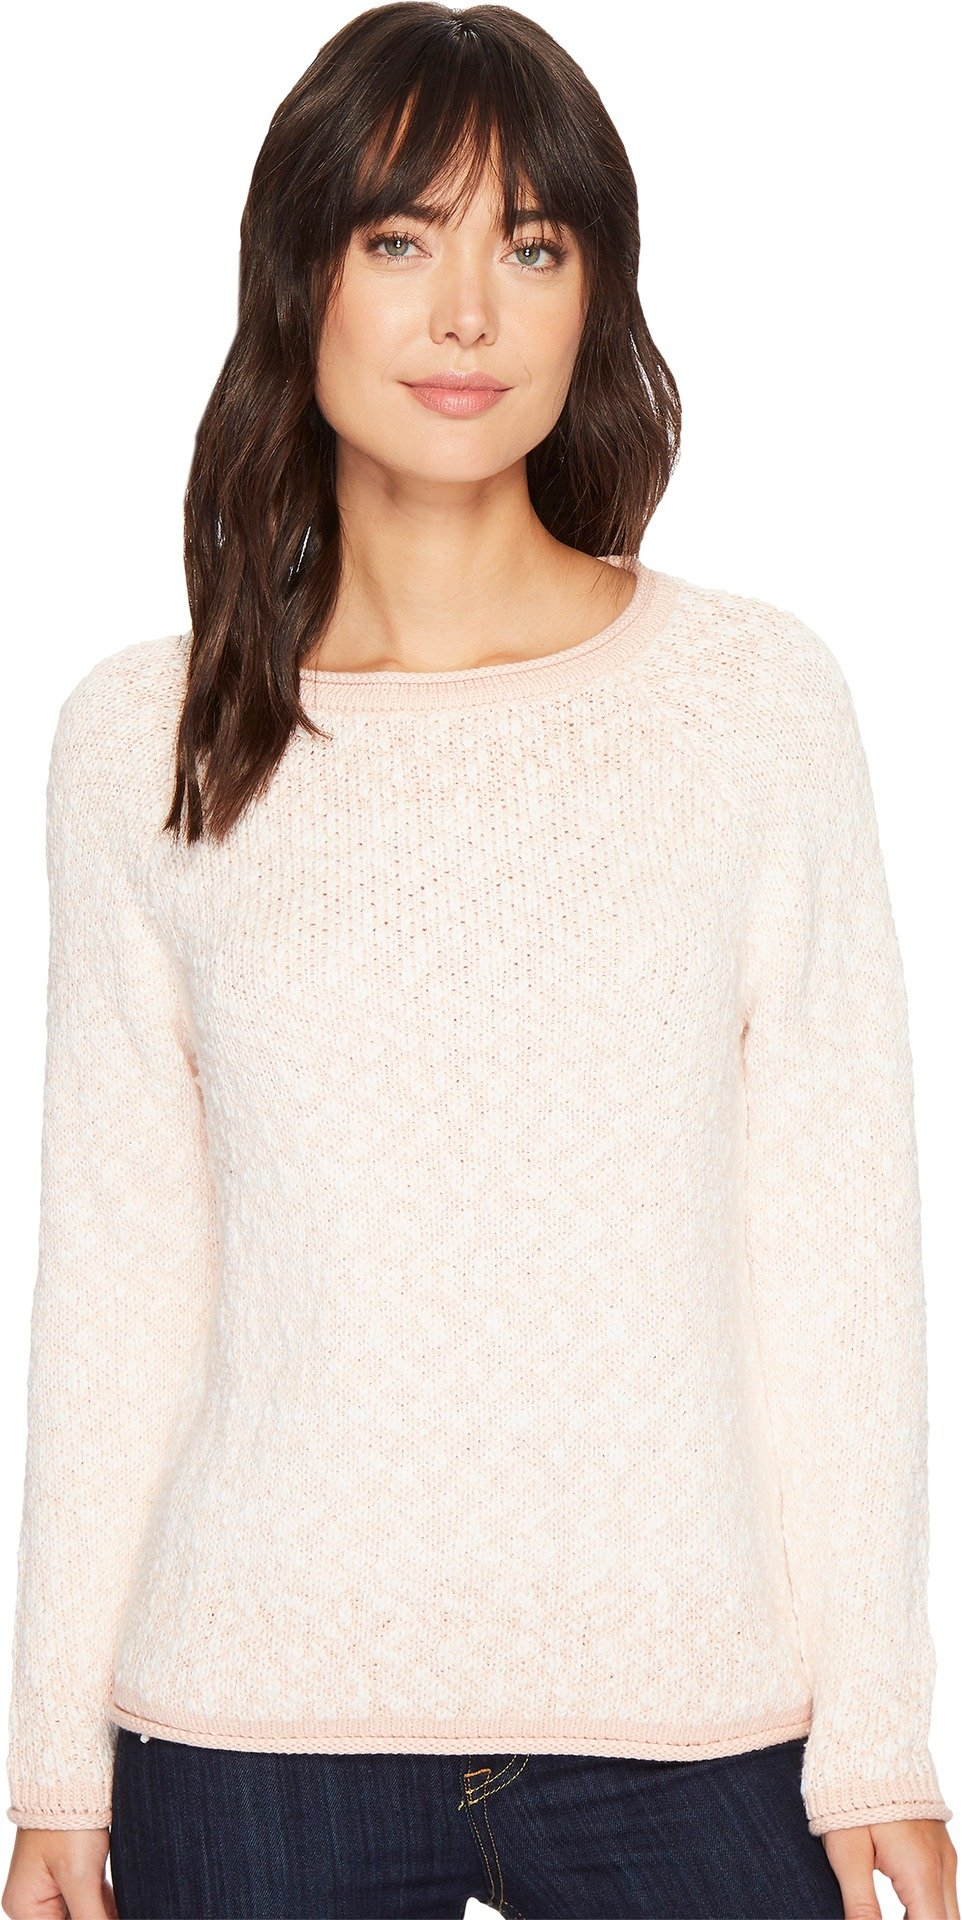 Pendleton Women's Soft Textured Pullover Evening Sand/Marshmallow X-Small